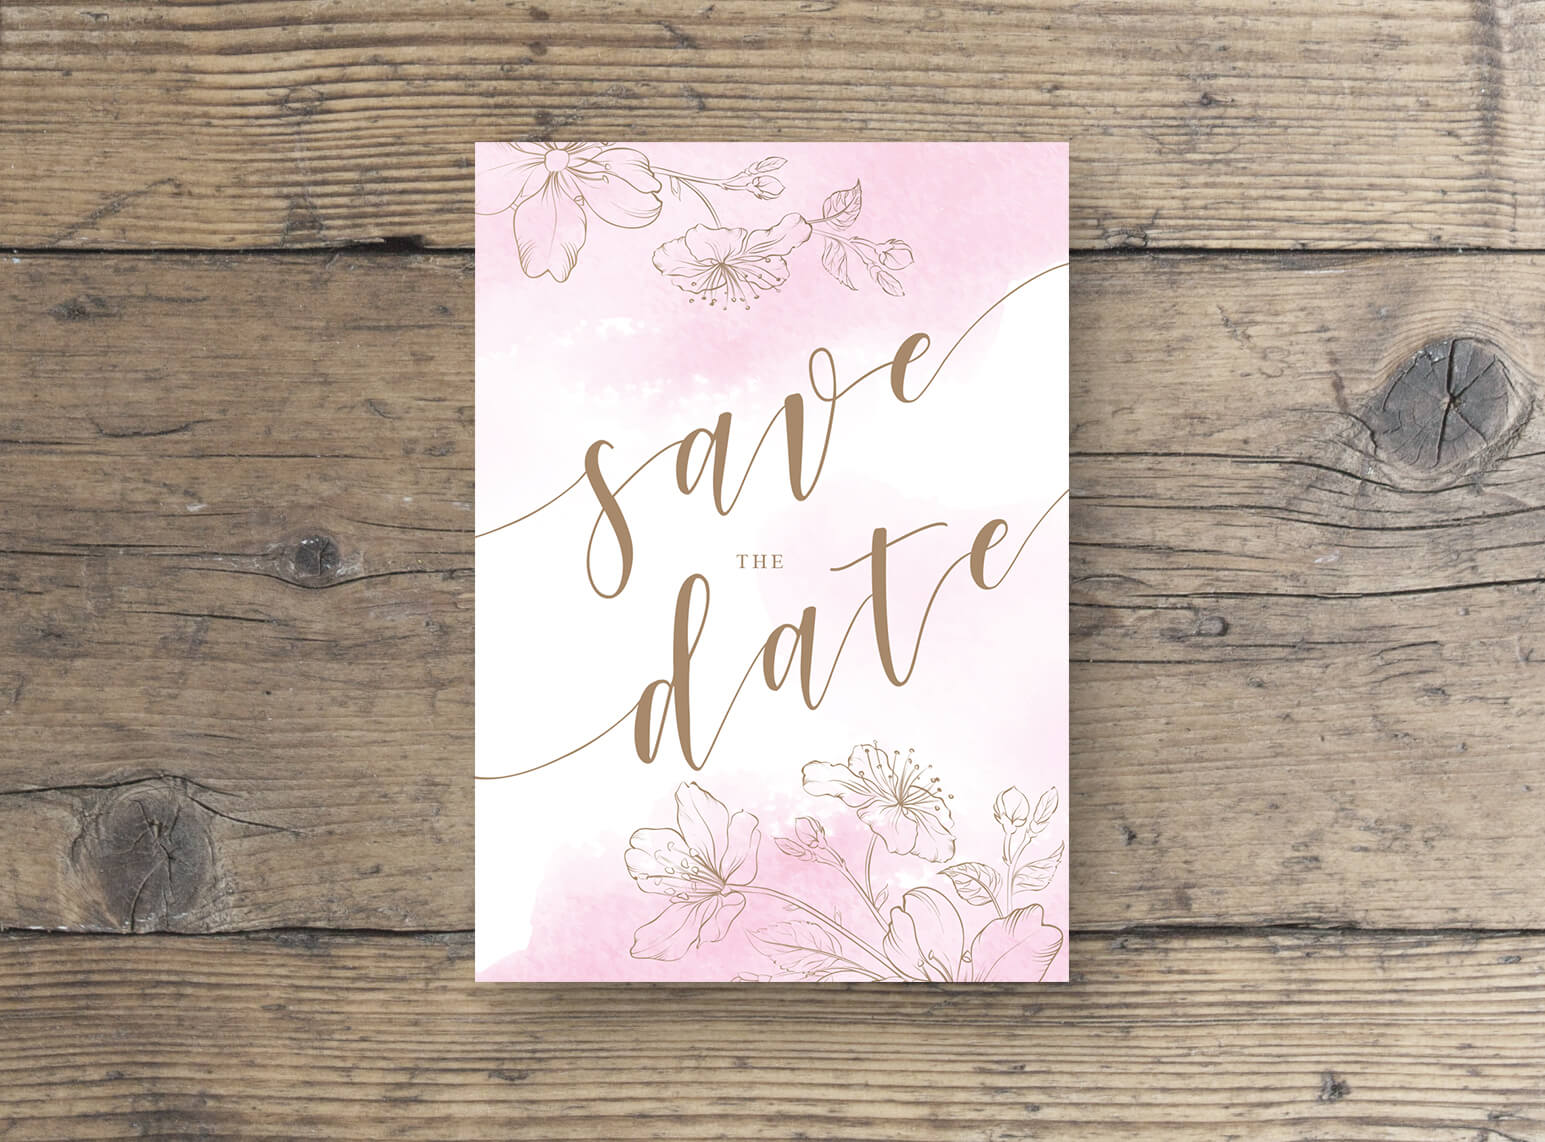 Save-the-Date | Save The Date Postkarte DIN A6 in Rosa Weiß Gold Goldfolie Kirschblüten Vorderseite